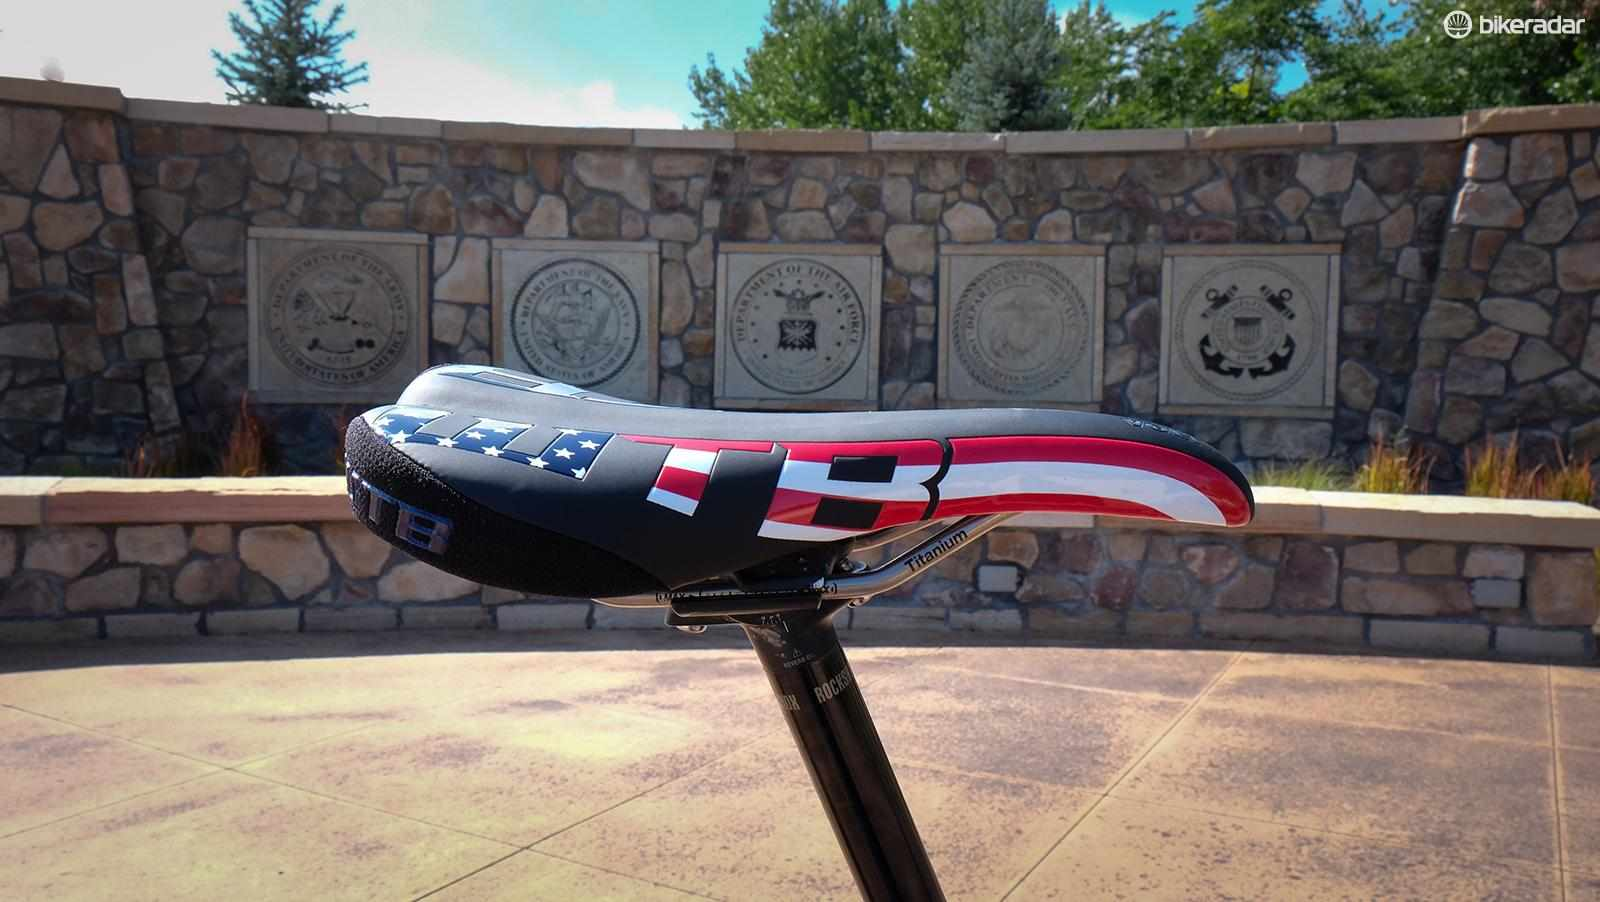 WTB is releasing a limited edition of the popular WTB Volt saddle to support wounded veterans